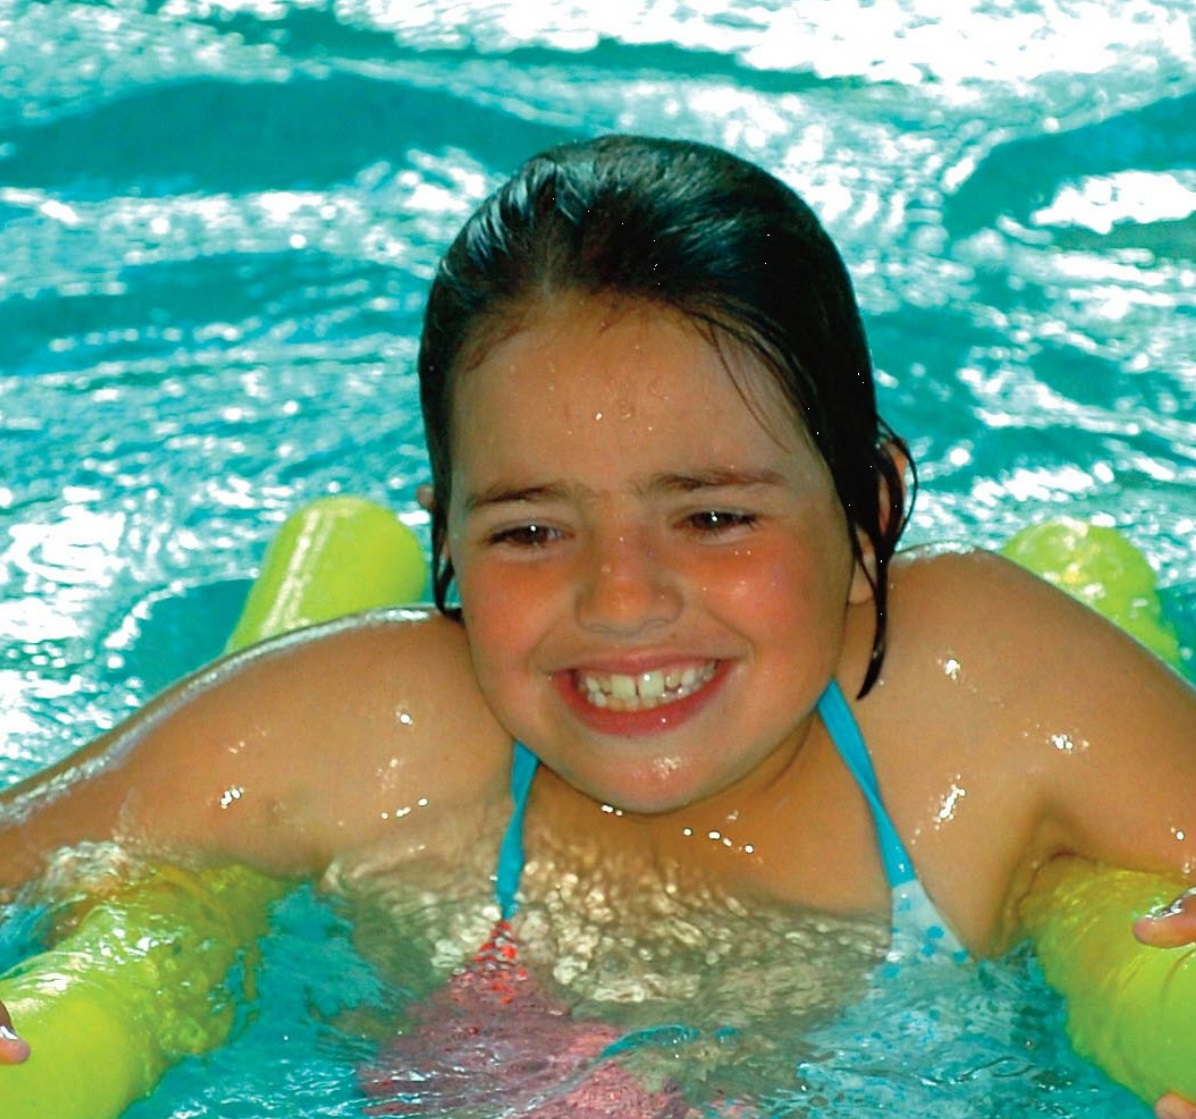 A child has fun in the swimming pool using a bright yellow float